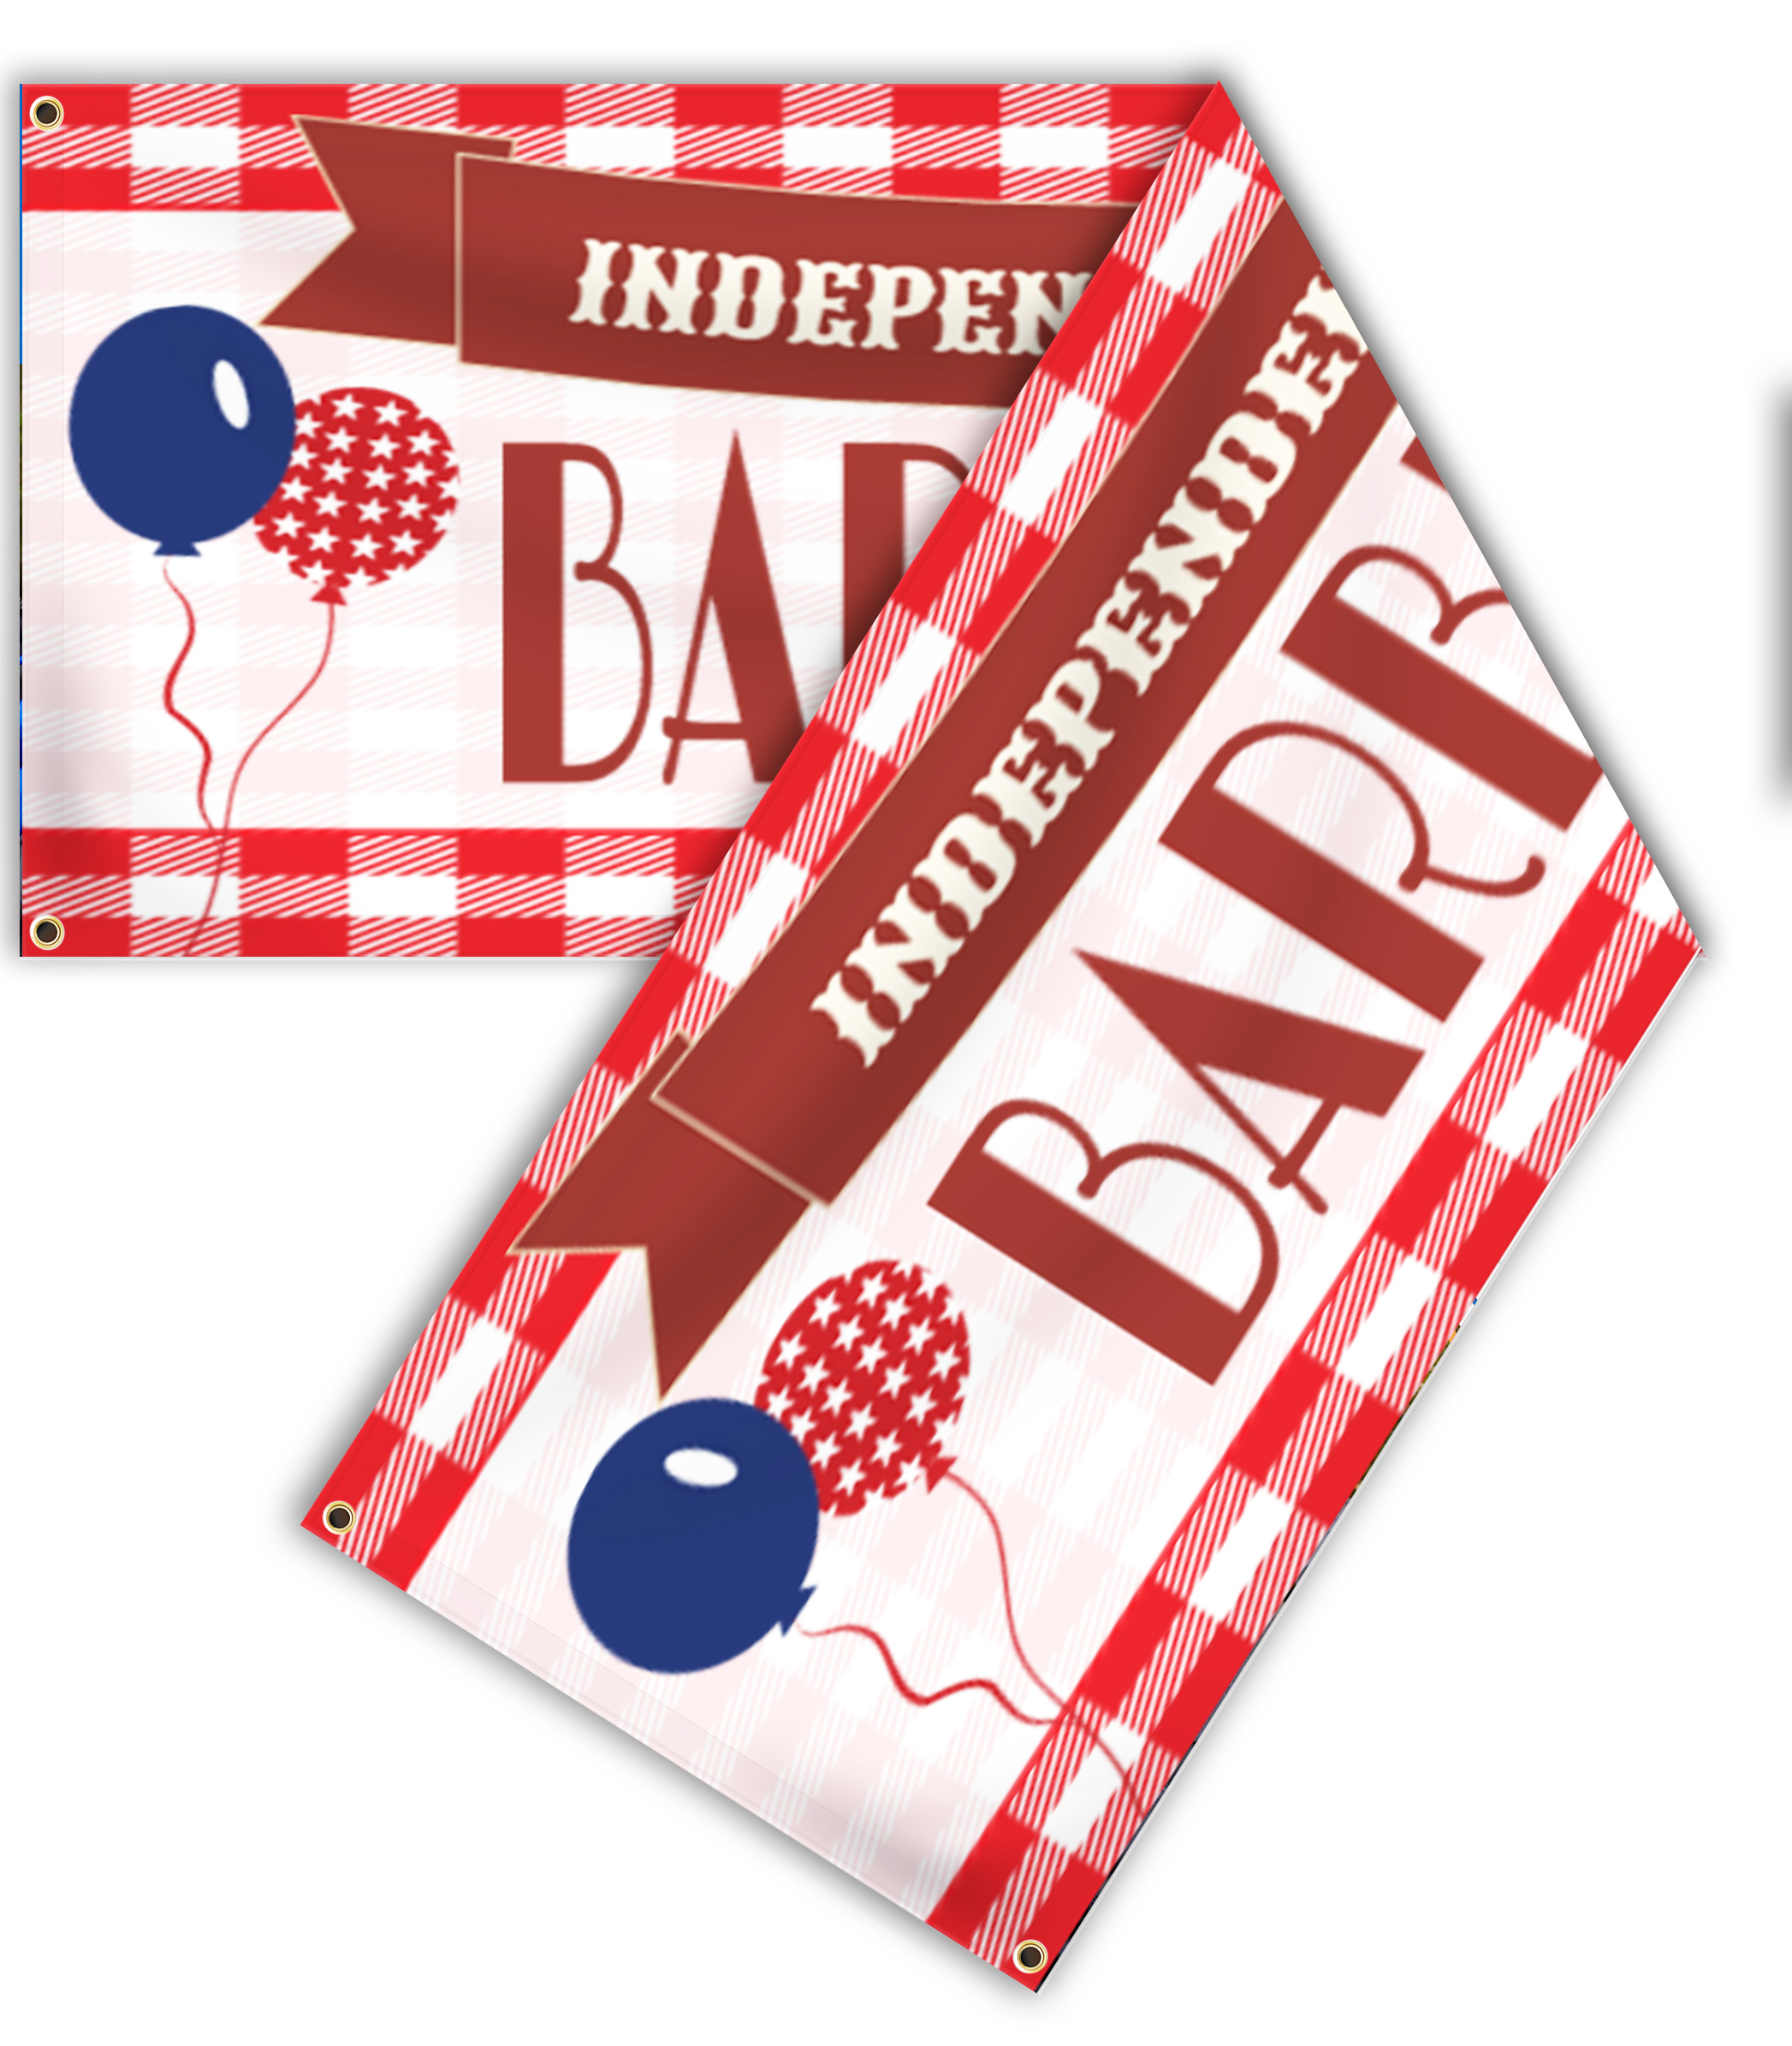 Double Sided Holiday Banners | LawnSigns.com